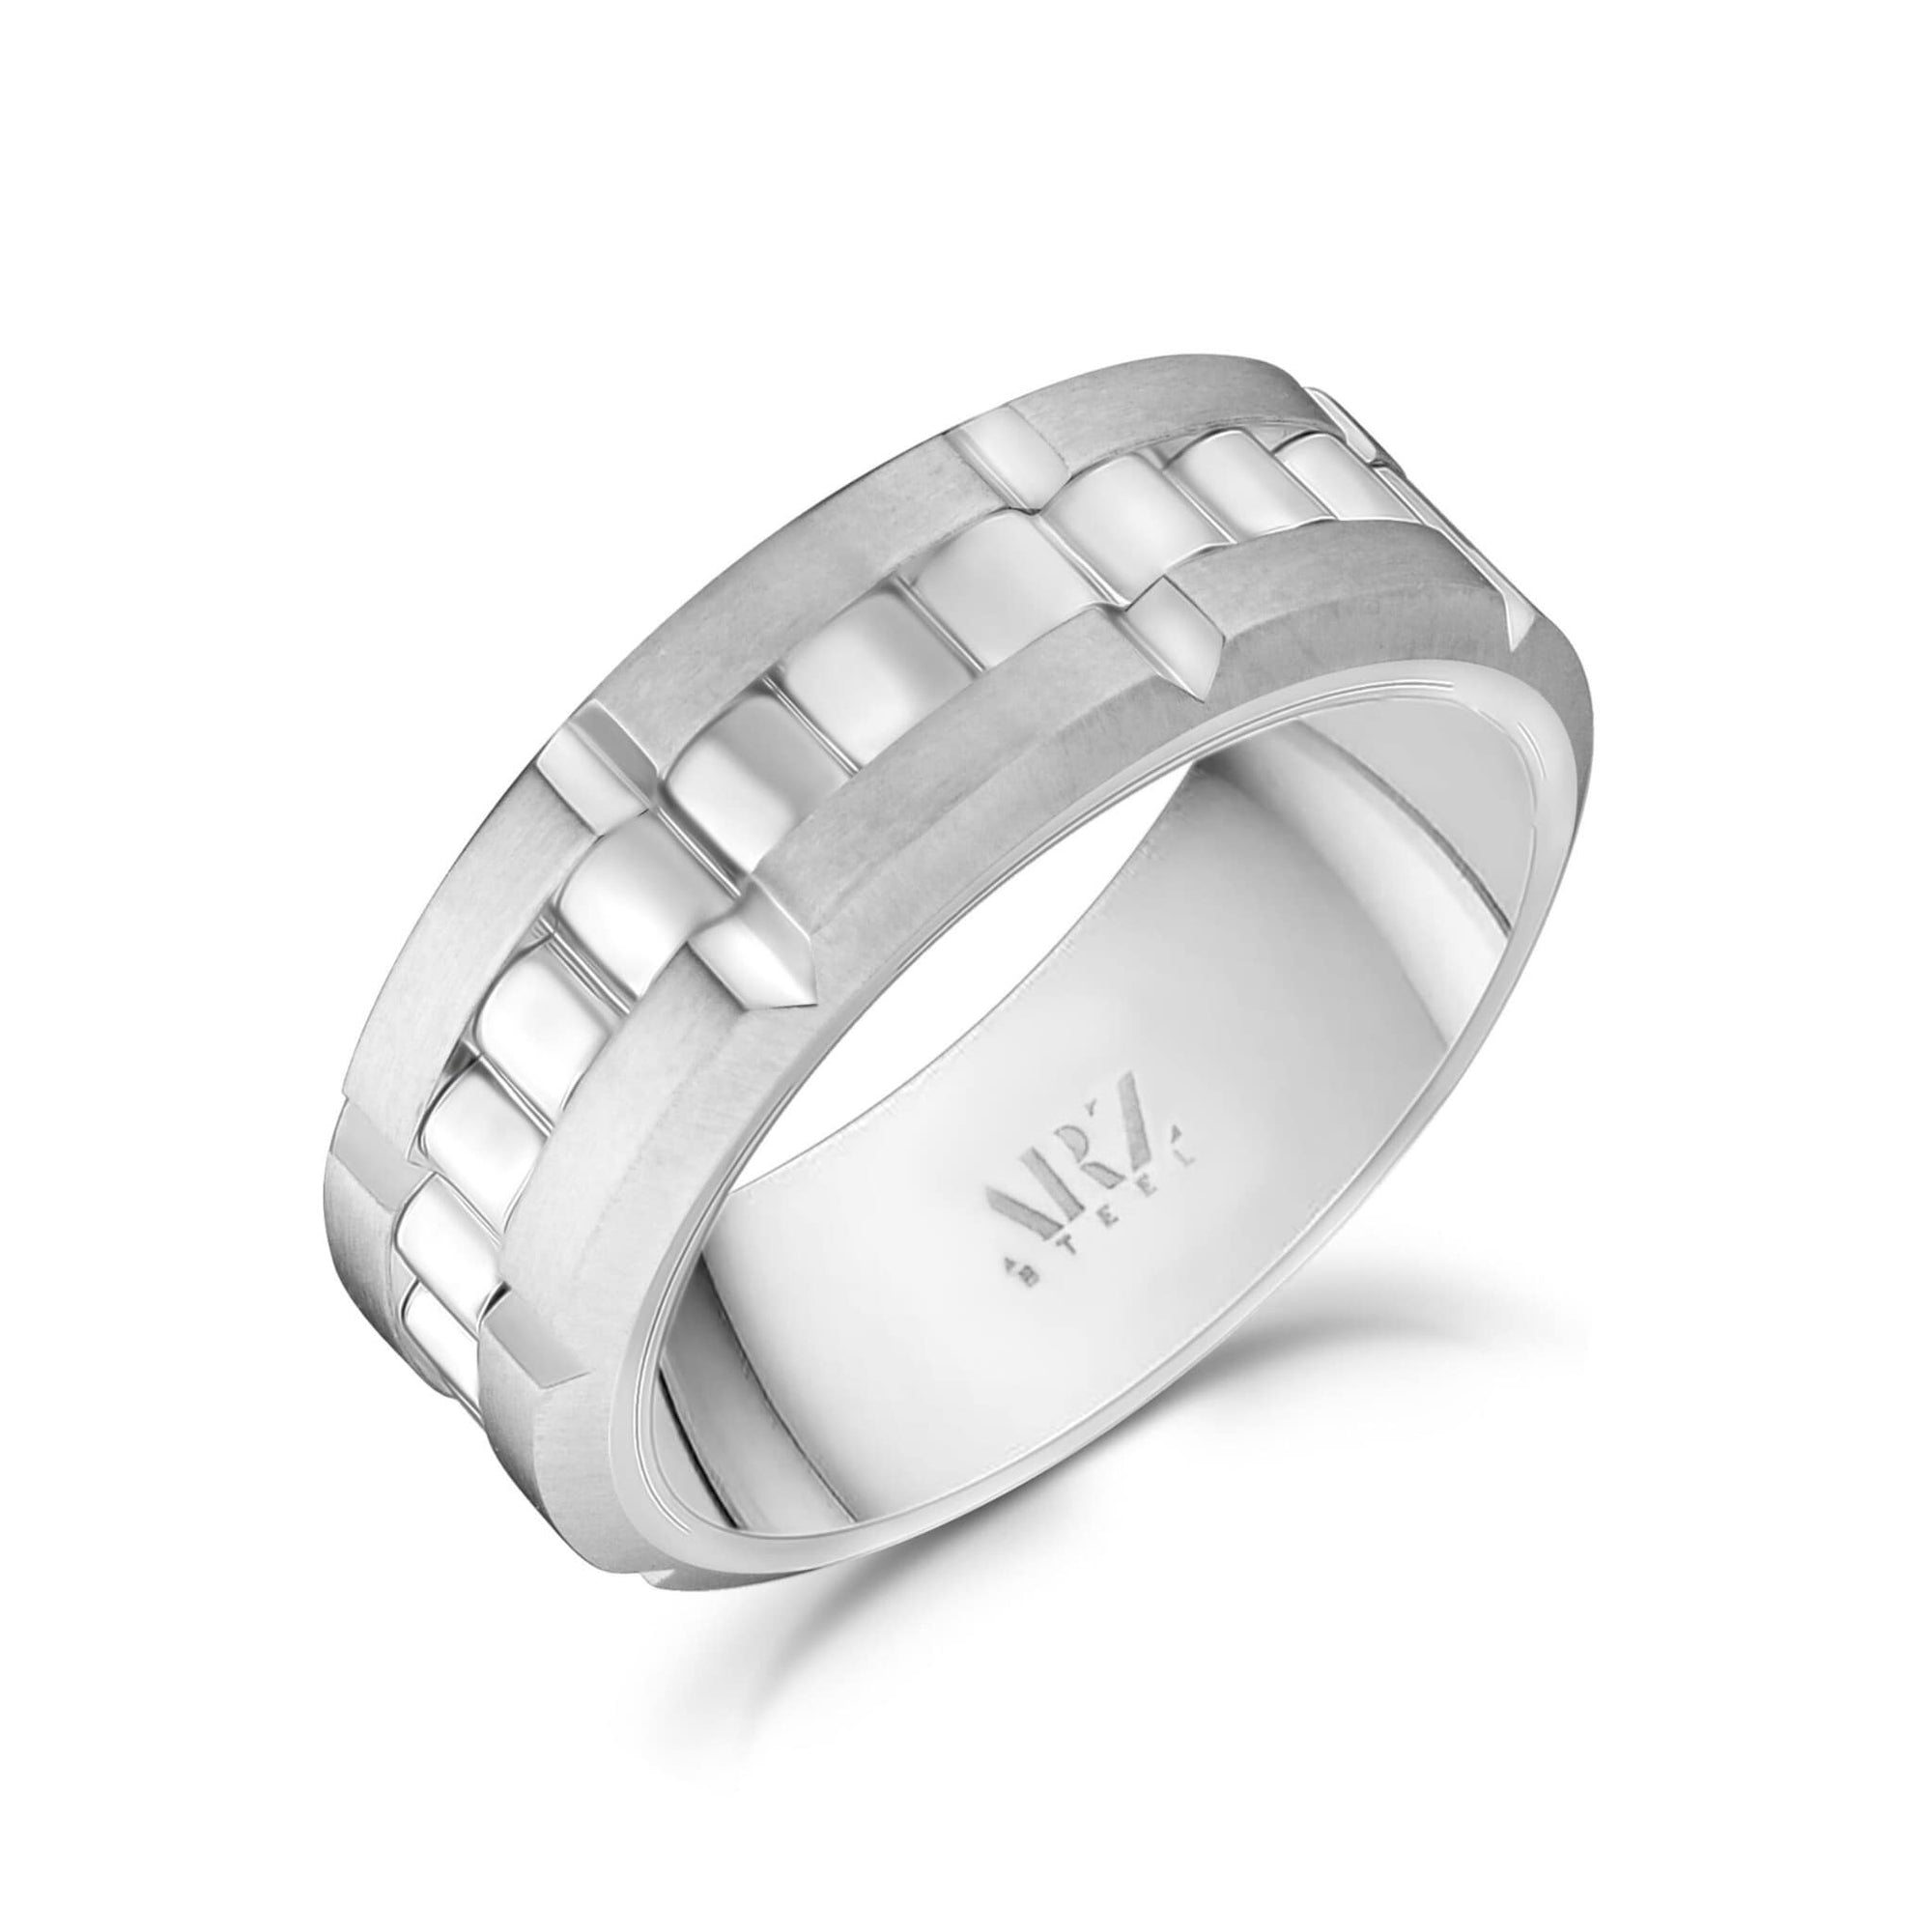 8mm Steel Spinner Band Ring at Arman's Jewellers